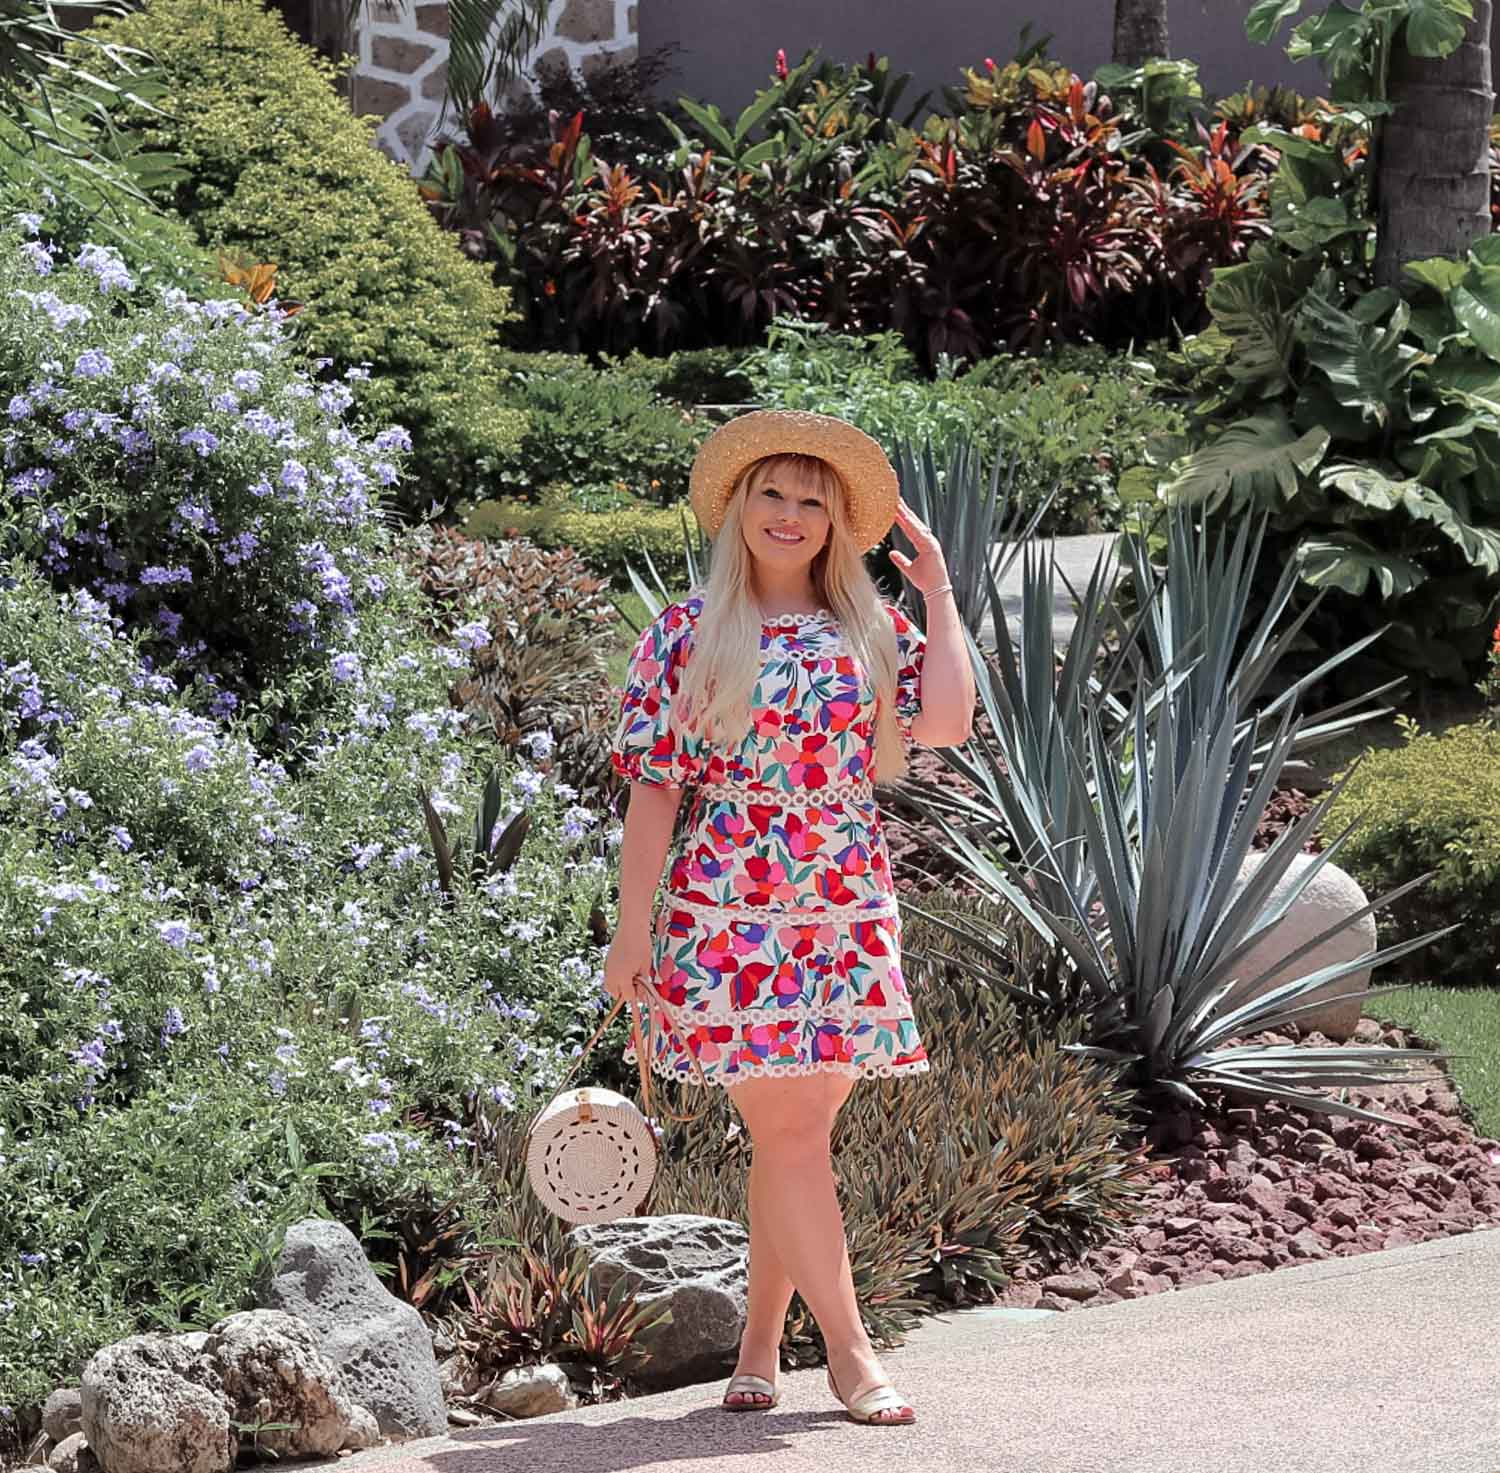 Elizabeth Hugen of Lizzie in Lace styles a summer hat with her Puerto Vallarta outfit!